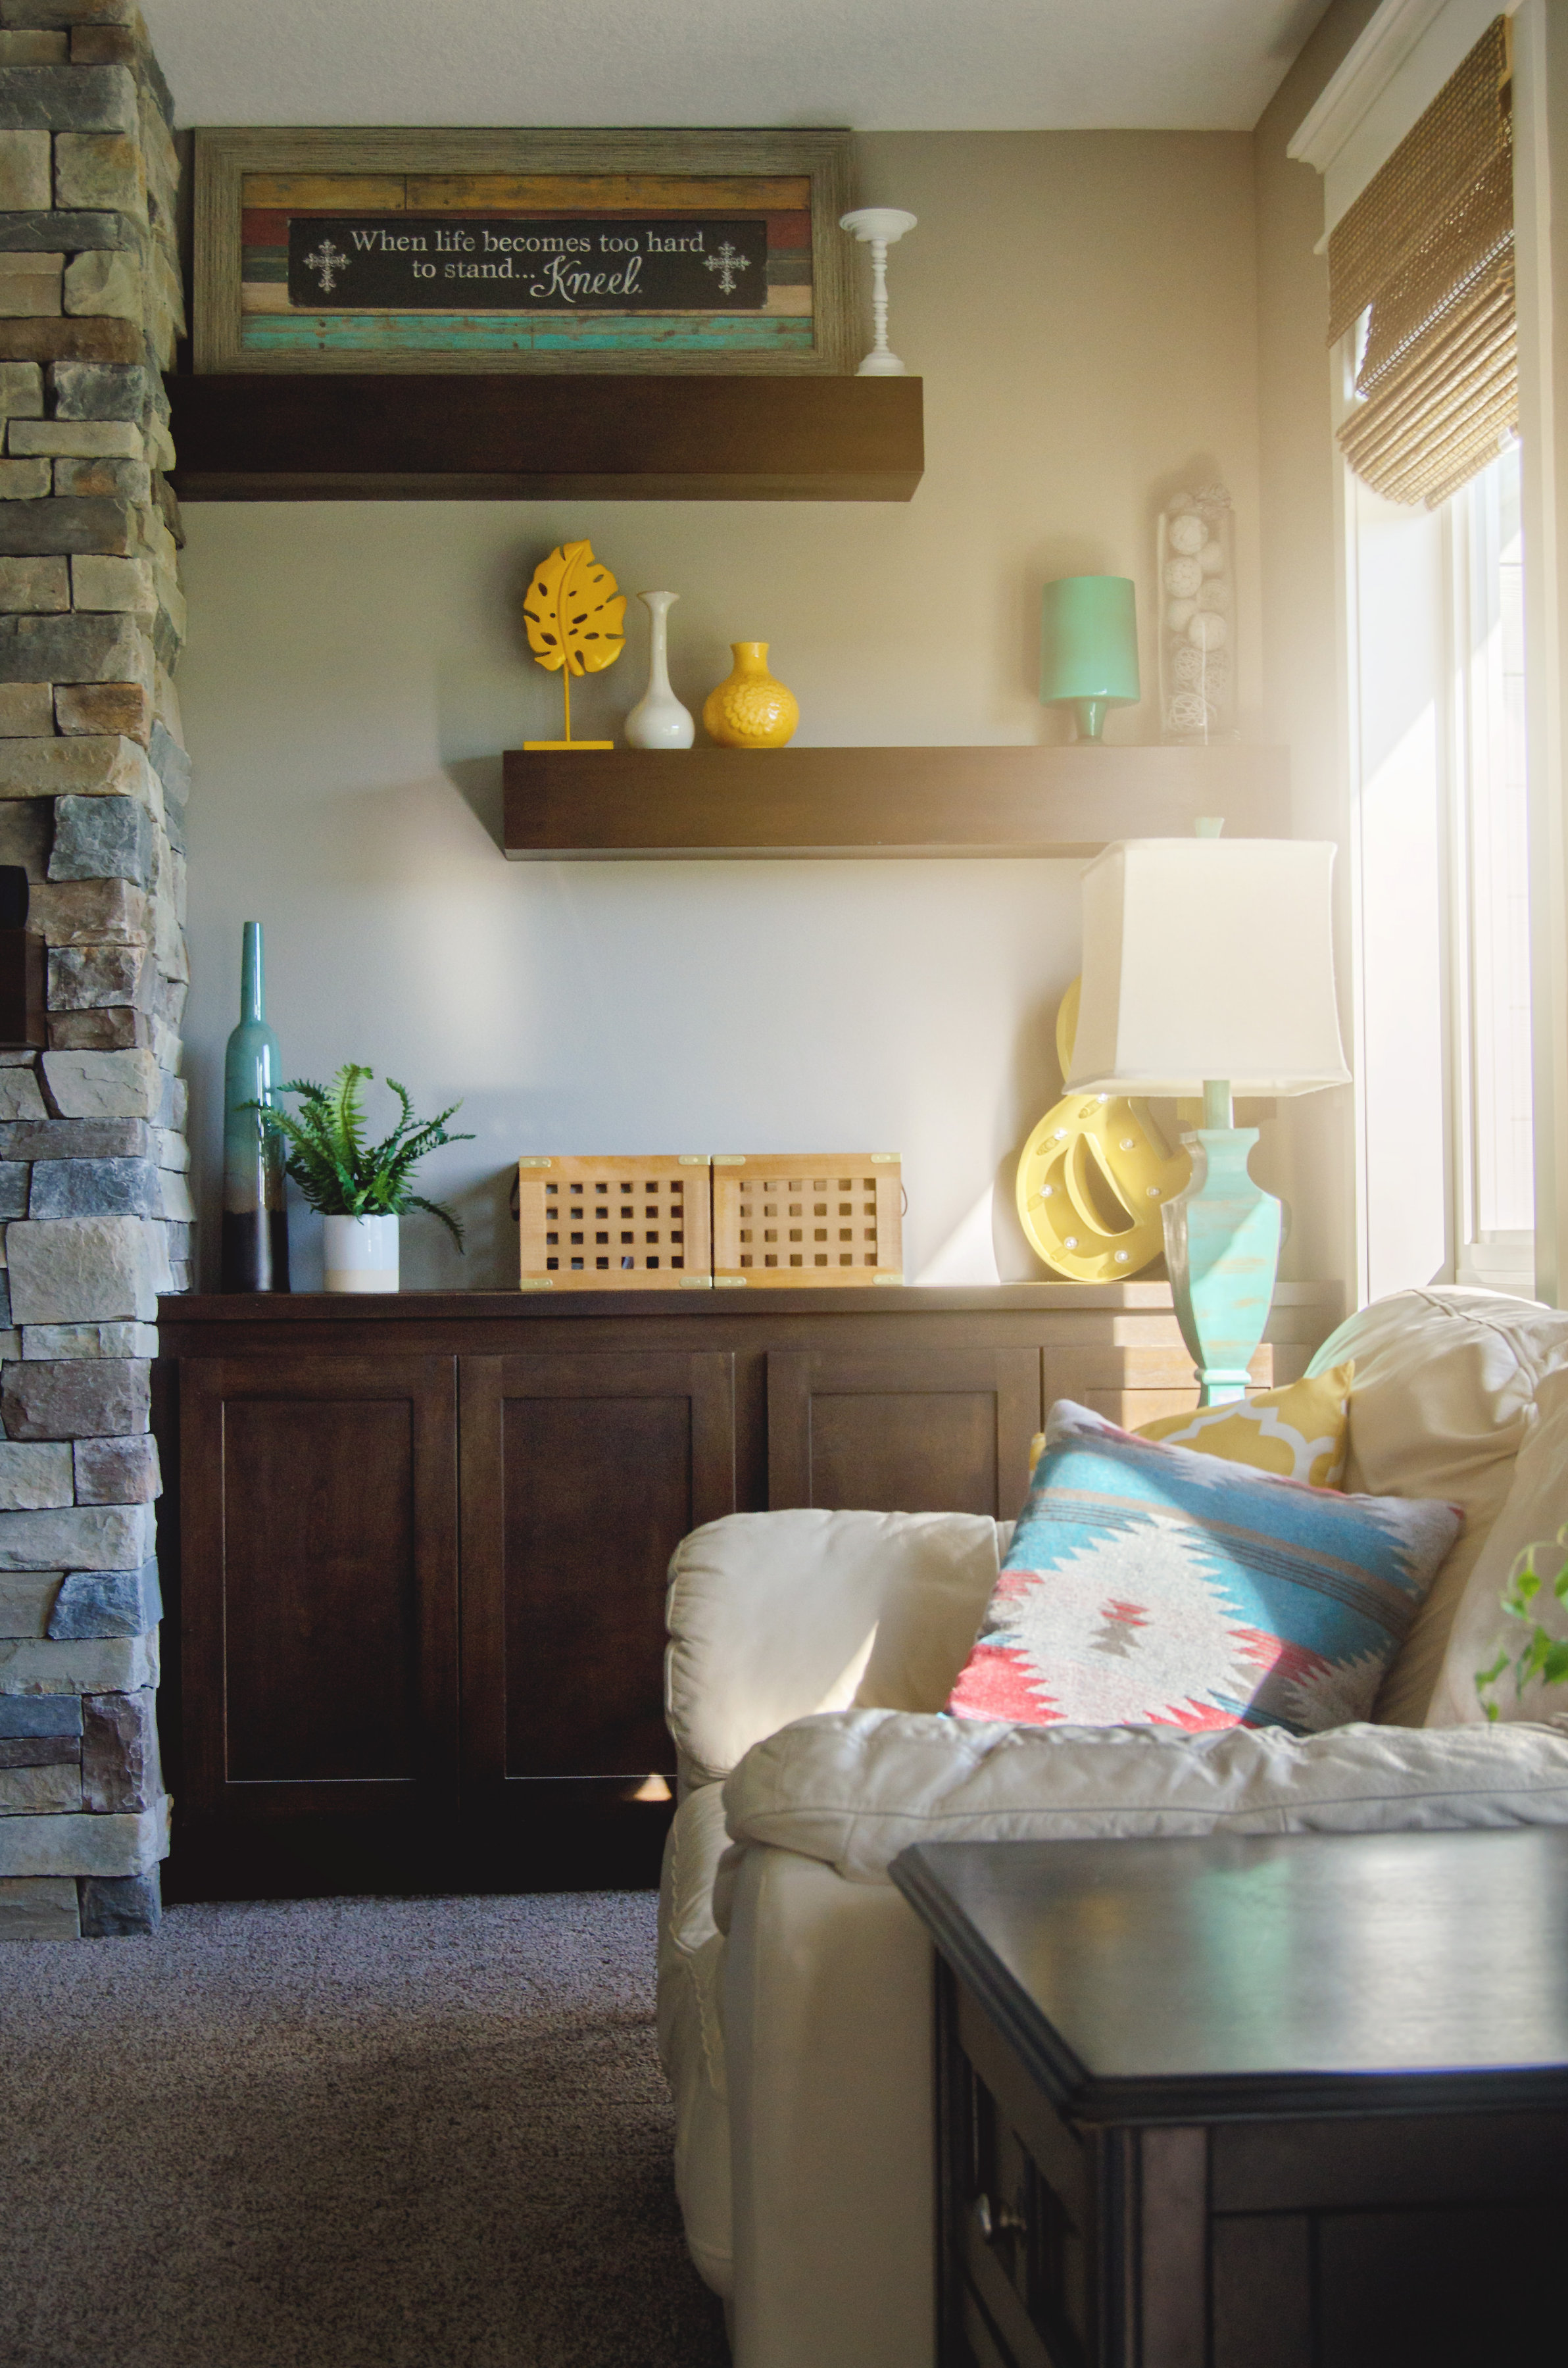 Living room shelves decorated with pops of yellow and aqua. | hprallandco.com